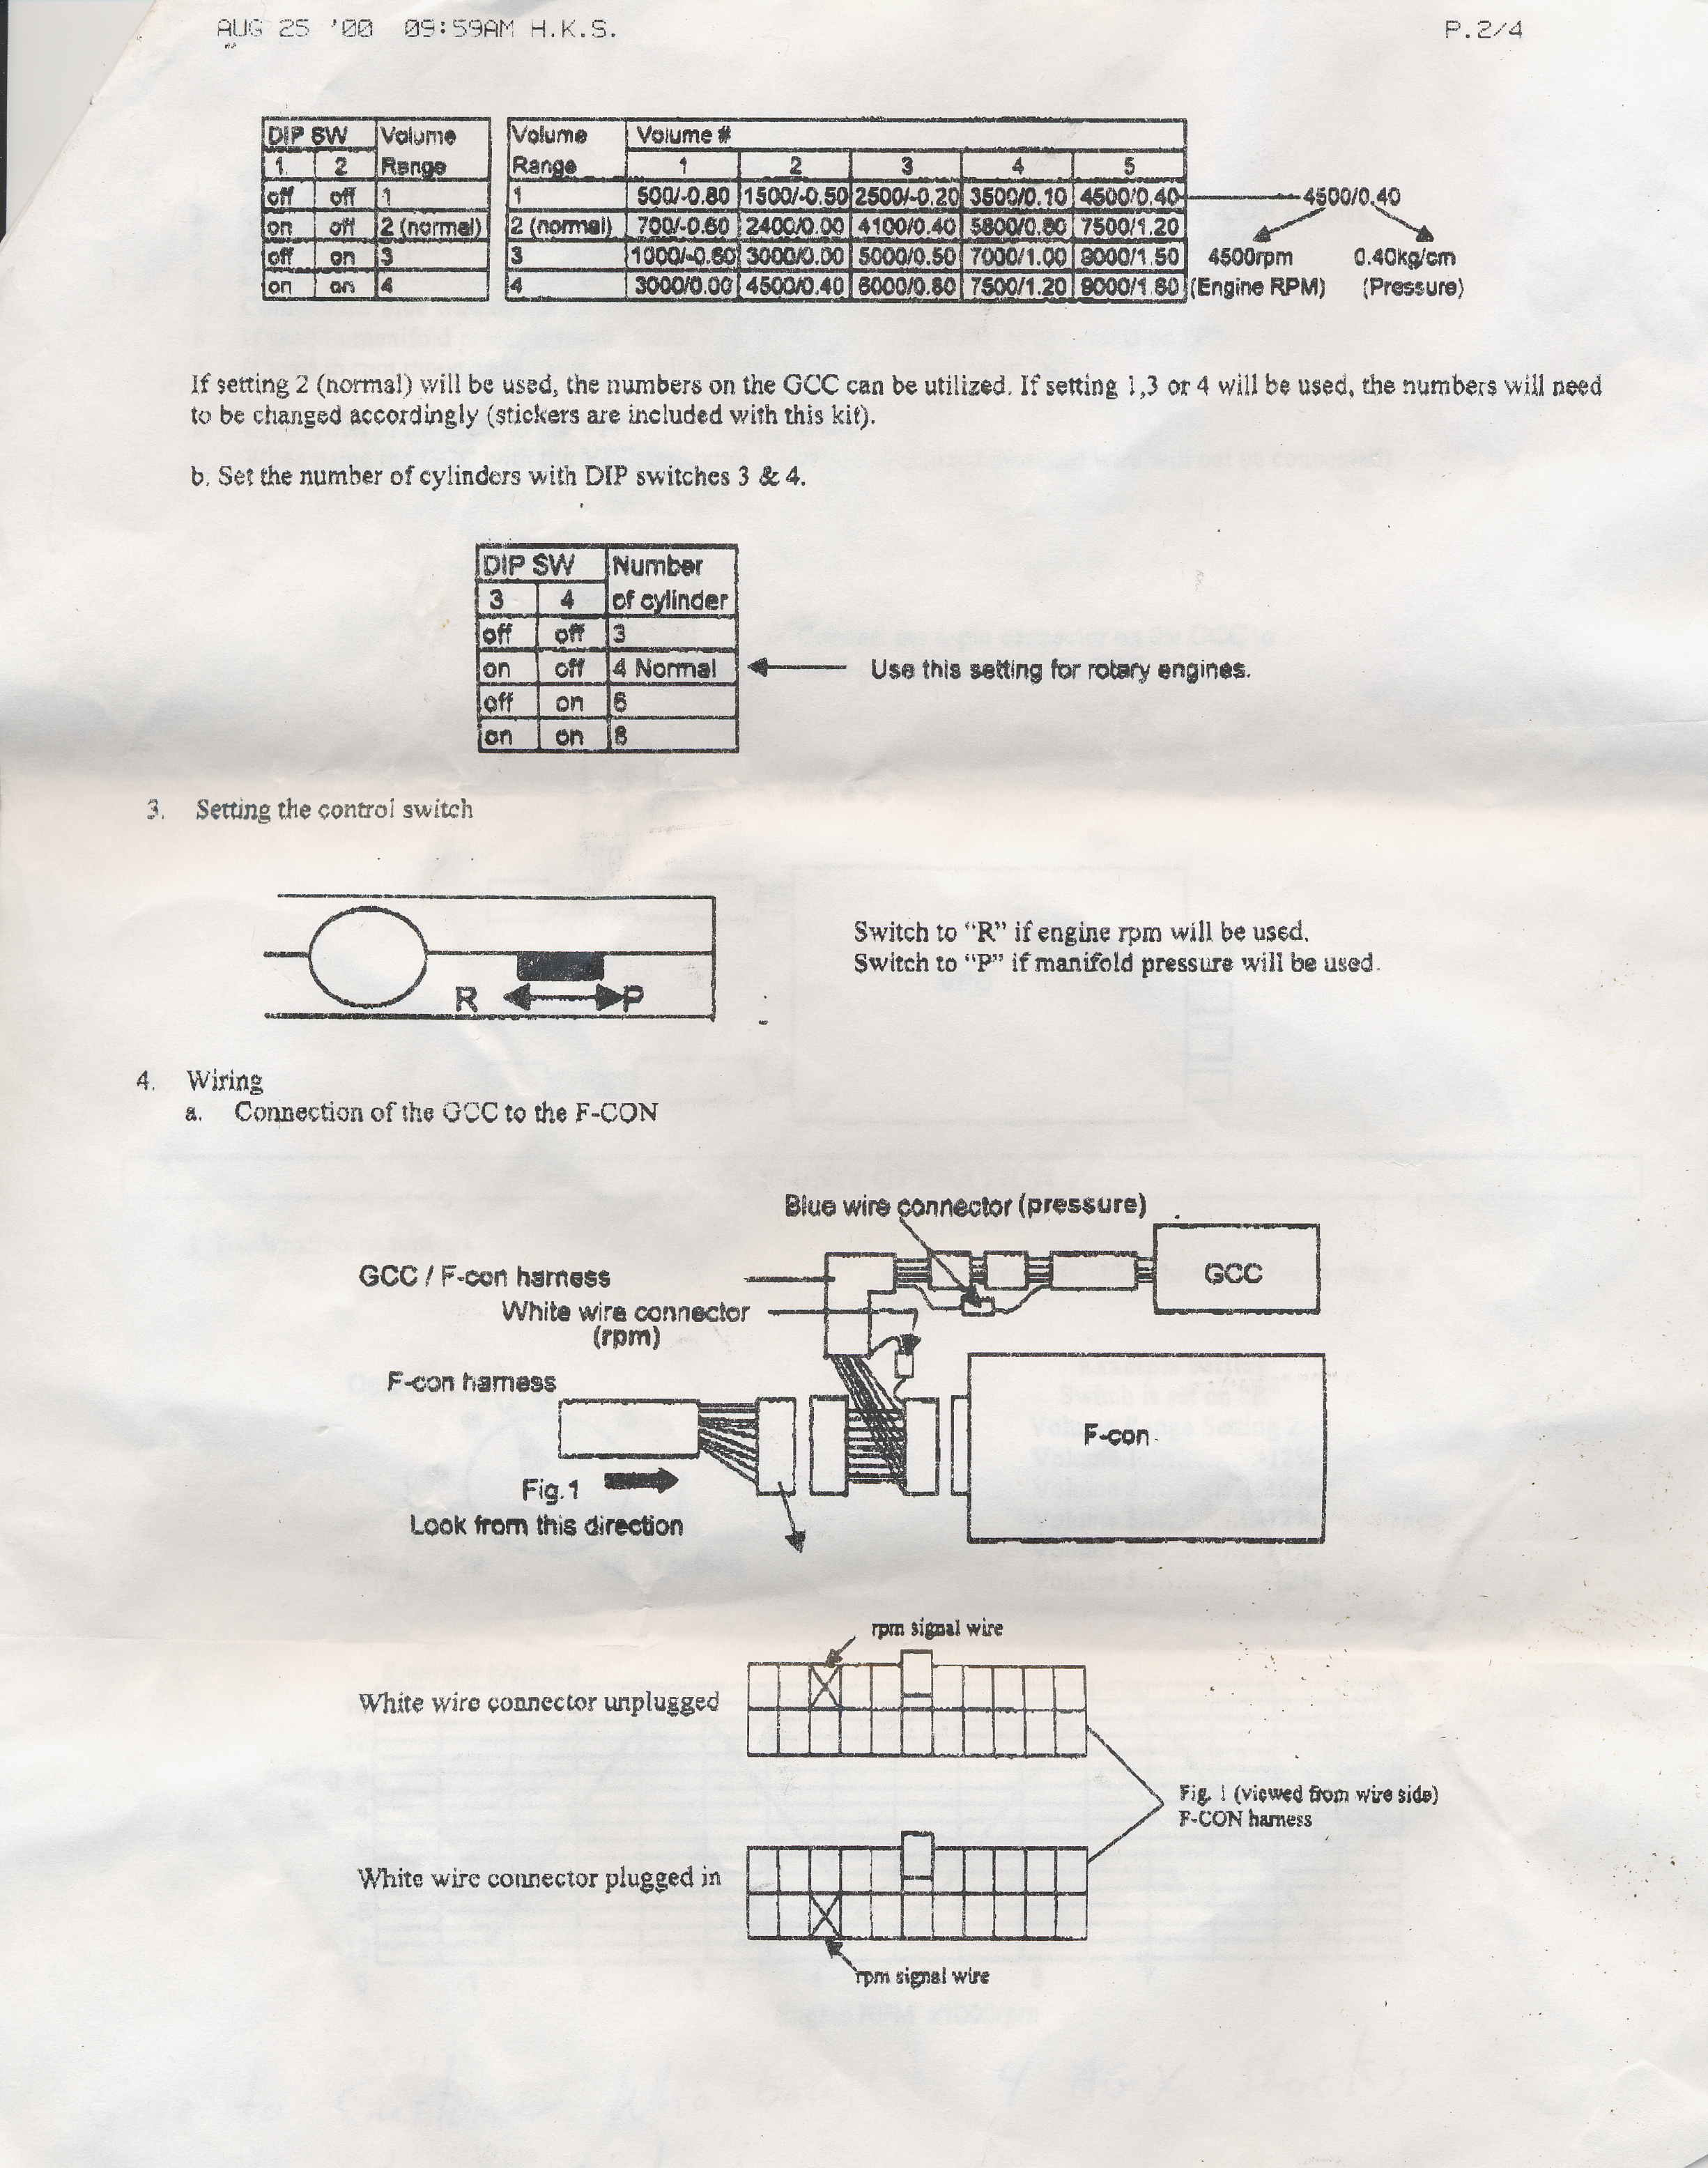 hks gcc manual 02 hks gcc graphical control computer hks fcd wiring diagram at fashall.co